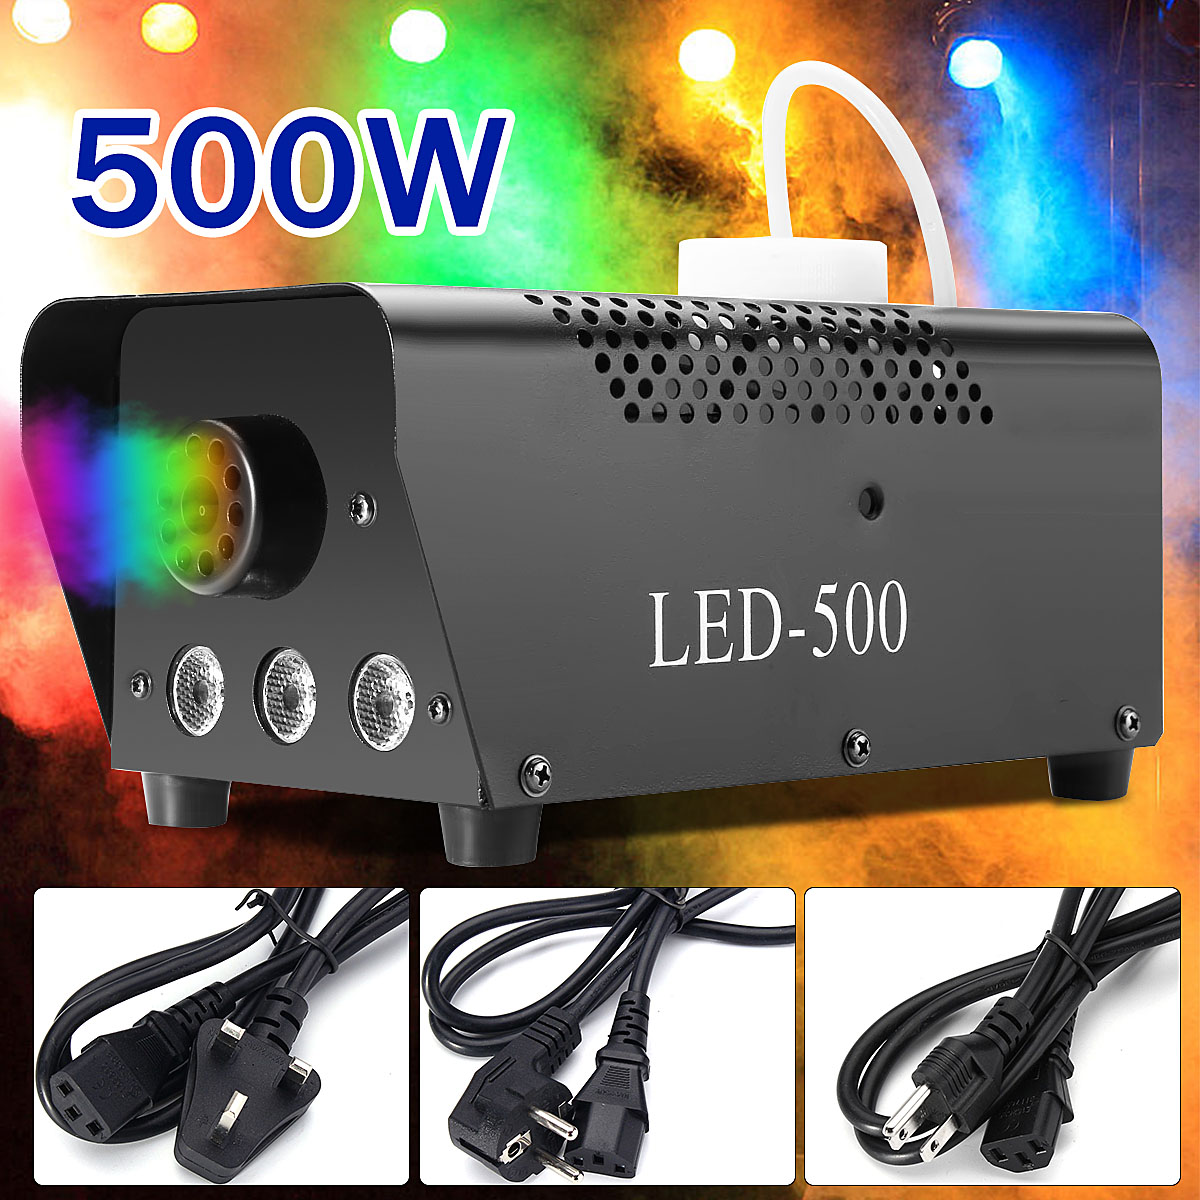 LED 500W Wireless Control Smoke Machine RGB Interlaced LED Fog Light Professional IP20 Stage Lighting Effect For Stage Perform